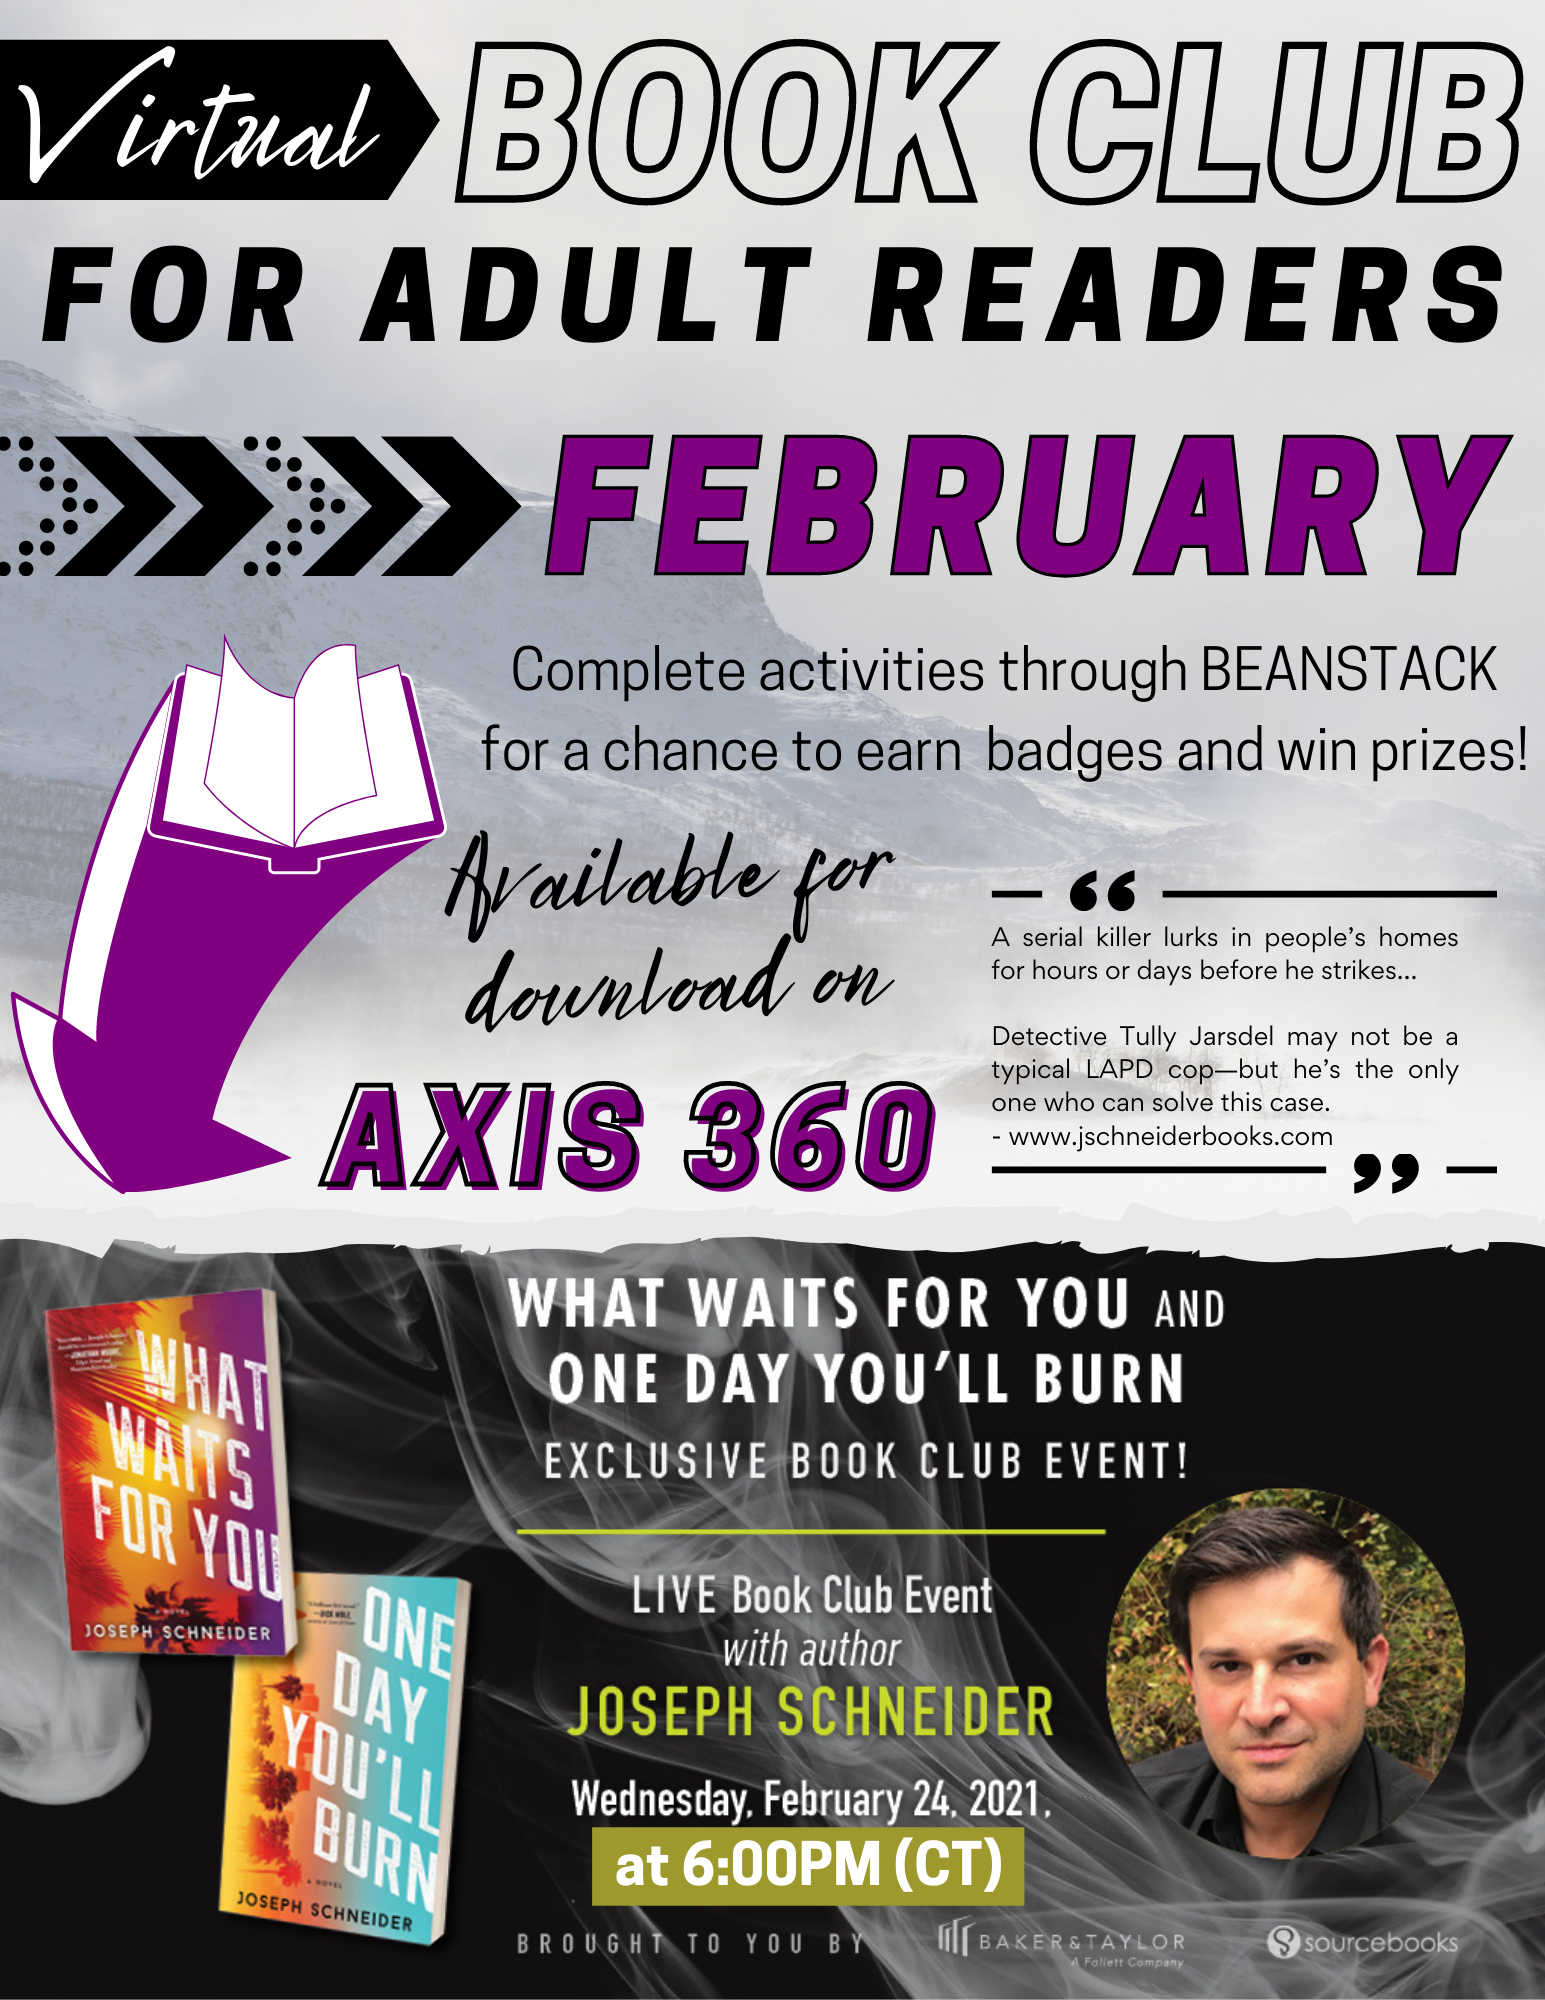 Don't miss February's Virtual Book Club for Adult Readers,